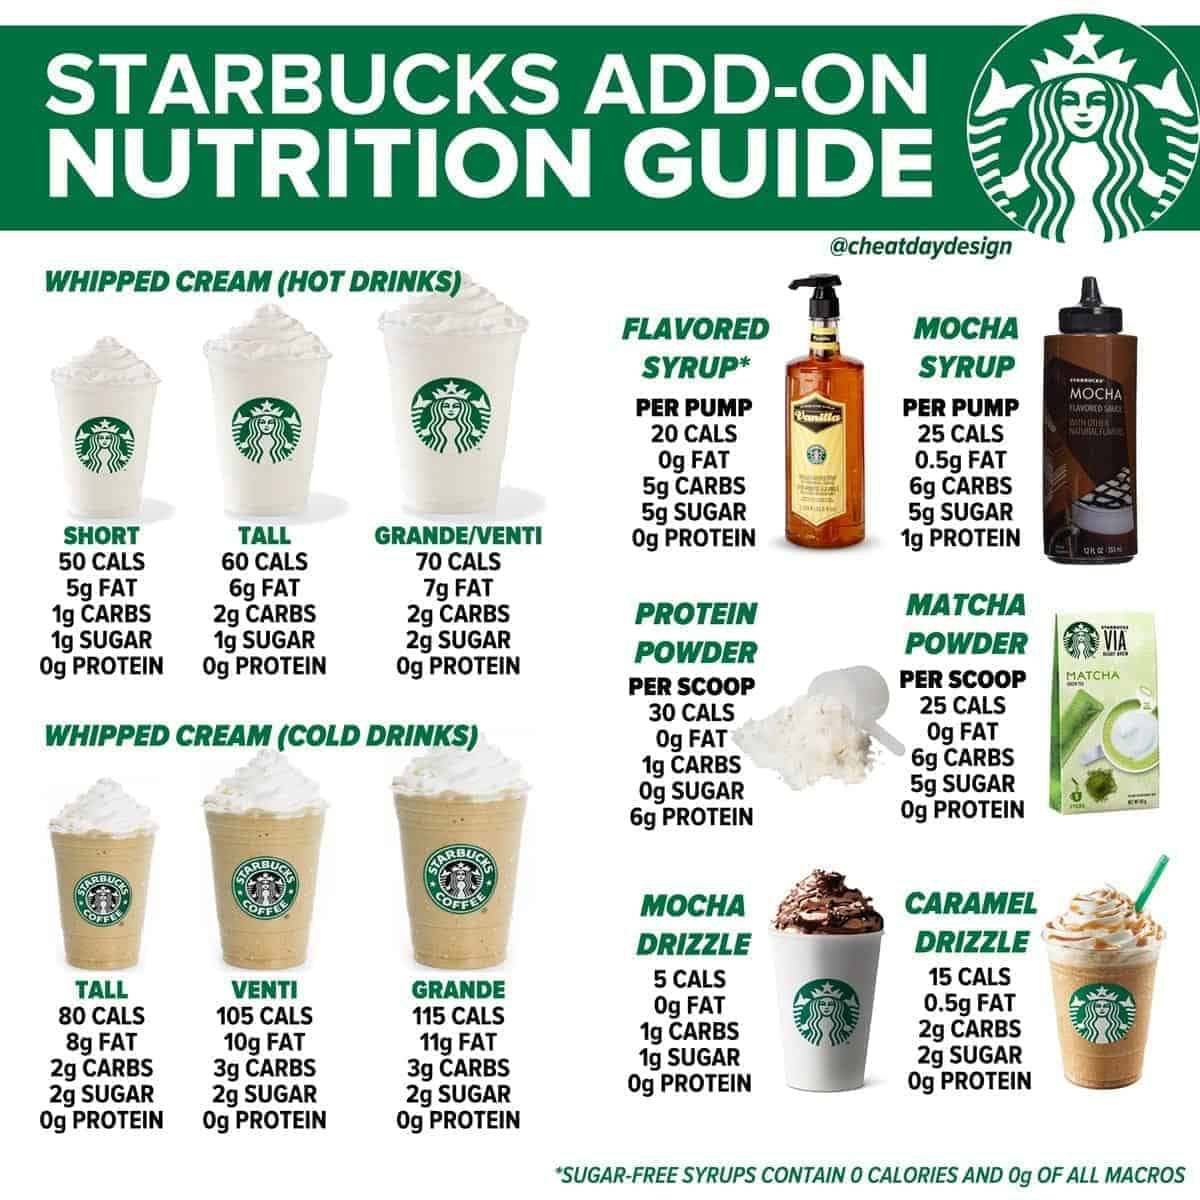 Starbucks add-on calories and nutrition guide